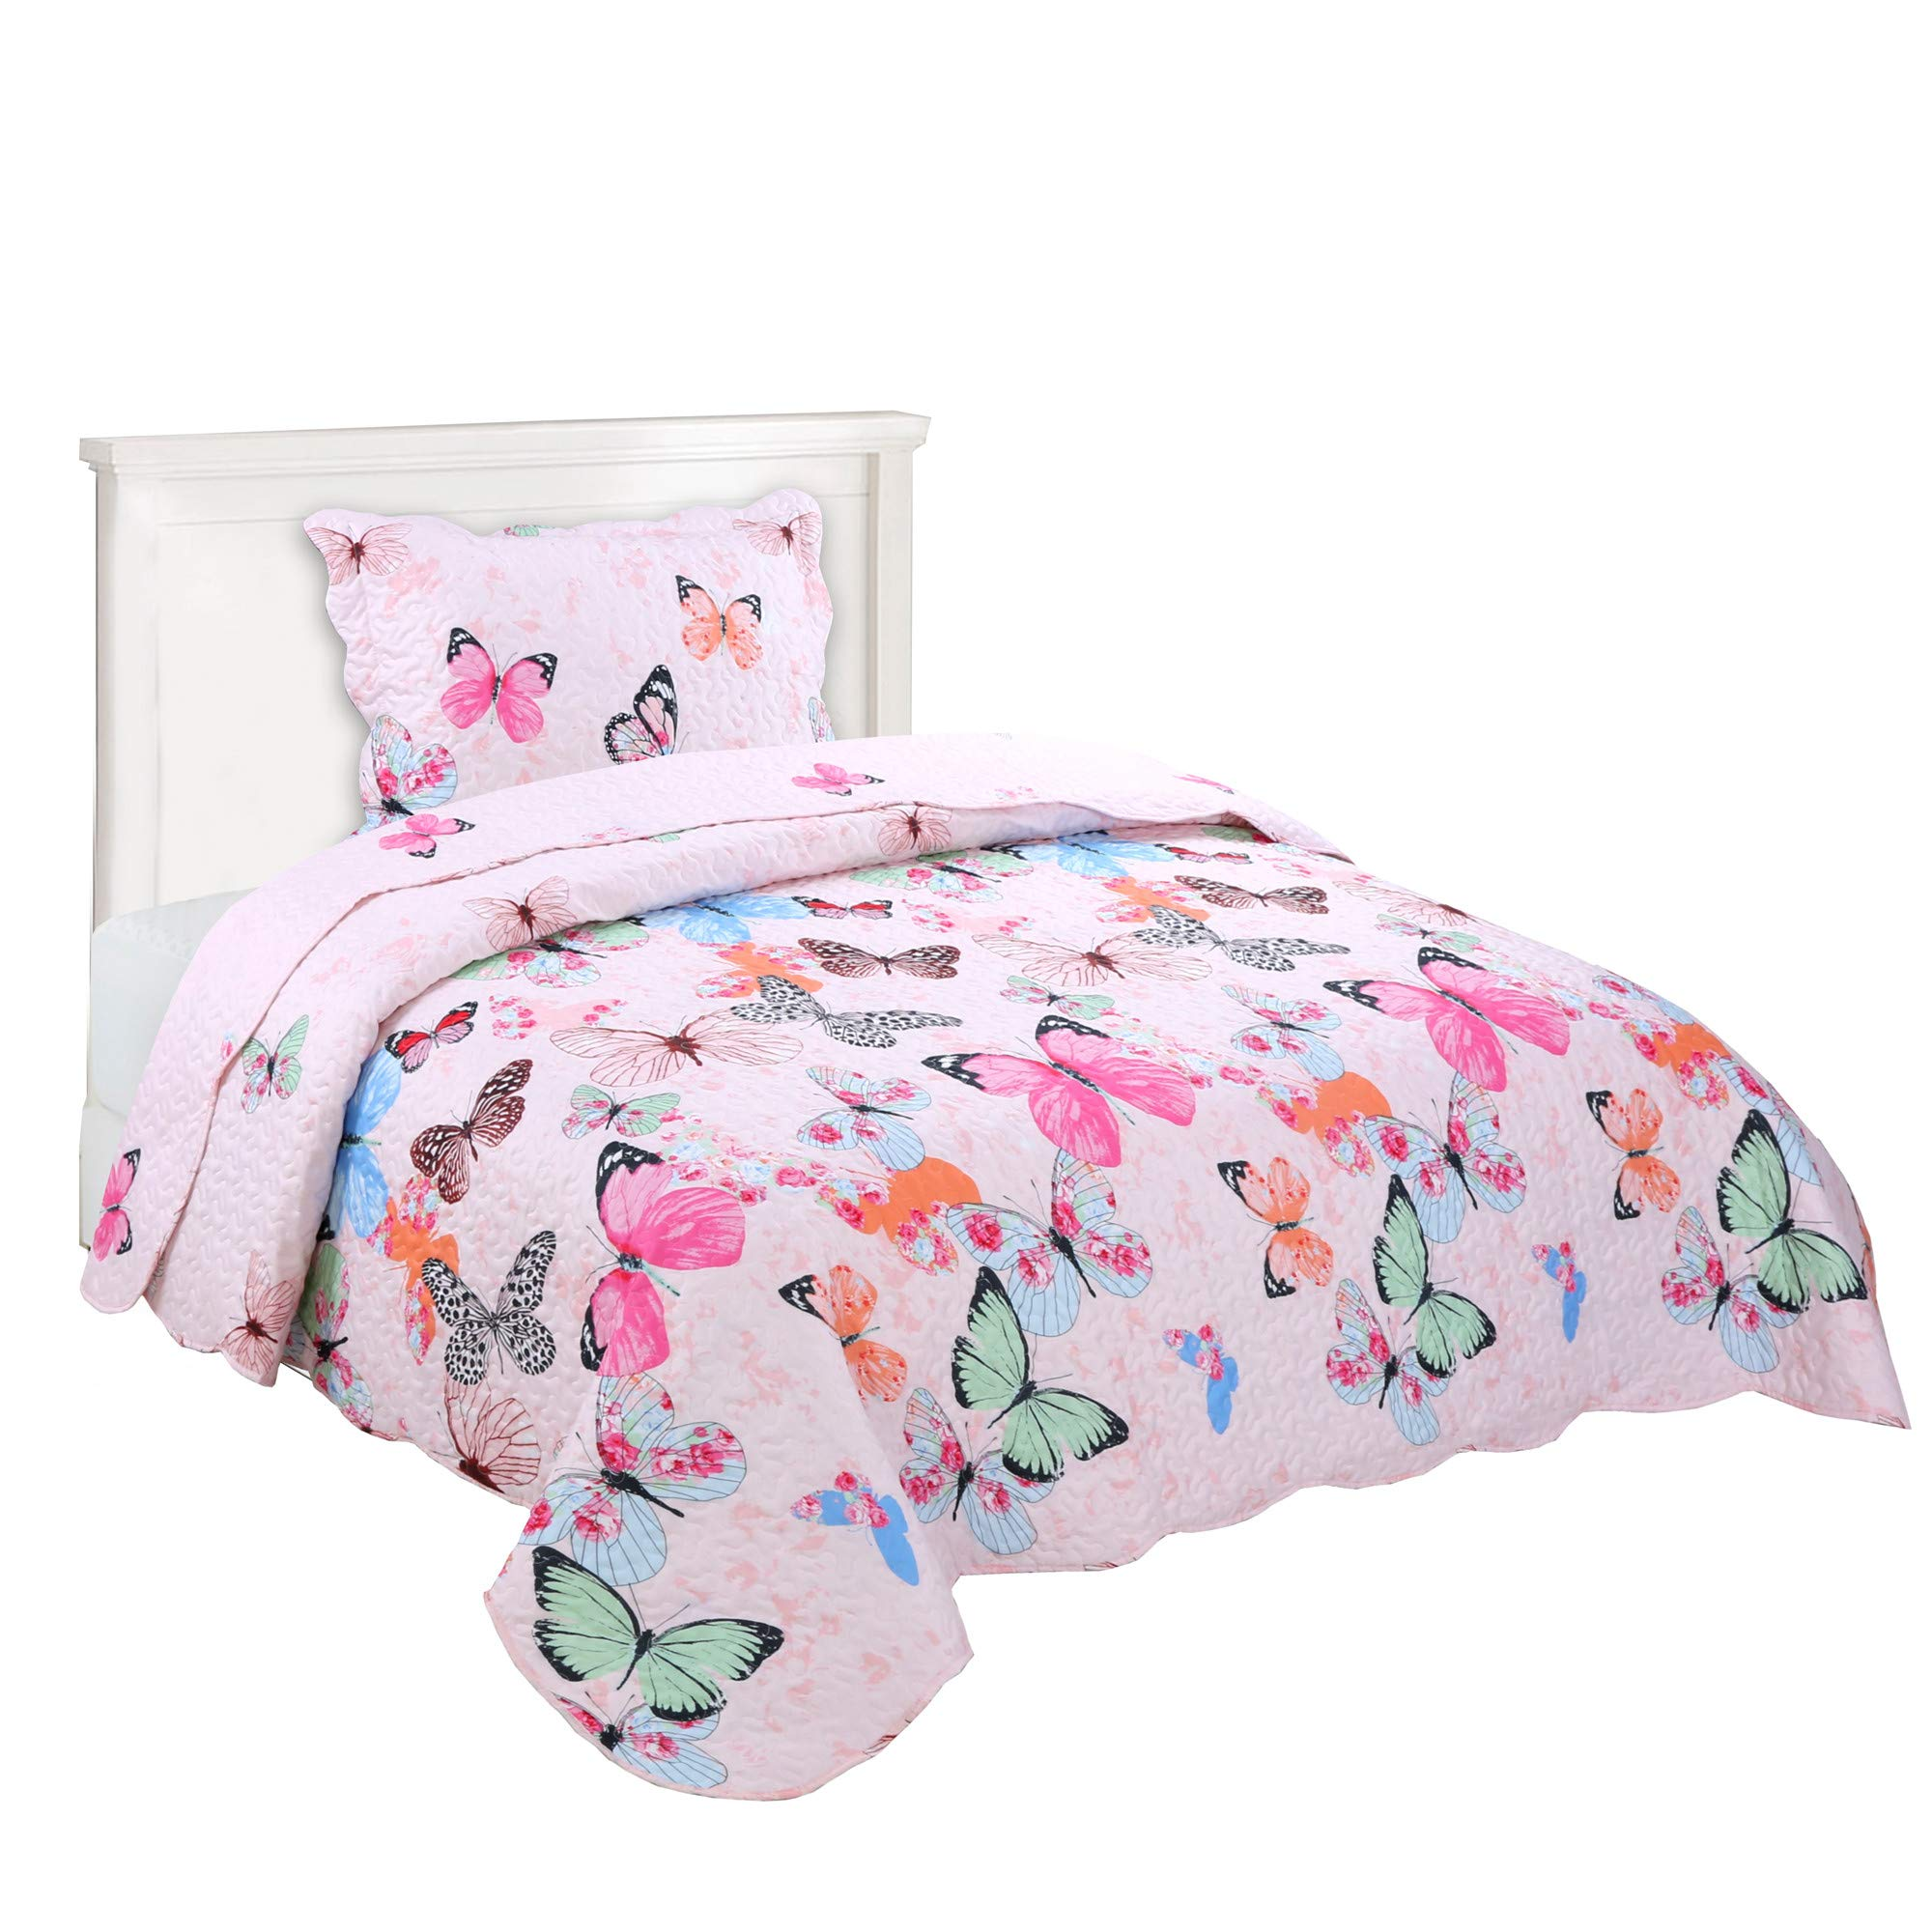 MarCielo 2 Piece Kids Bedspread Quilts Set Throw Blanket for Teens Boys Girls Bed Printed Bedding Coverlet Butterfly A72(Twin(68''x86'')) by MarCielo